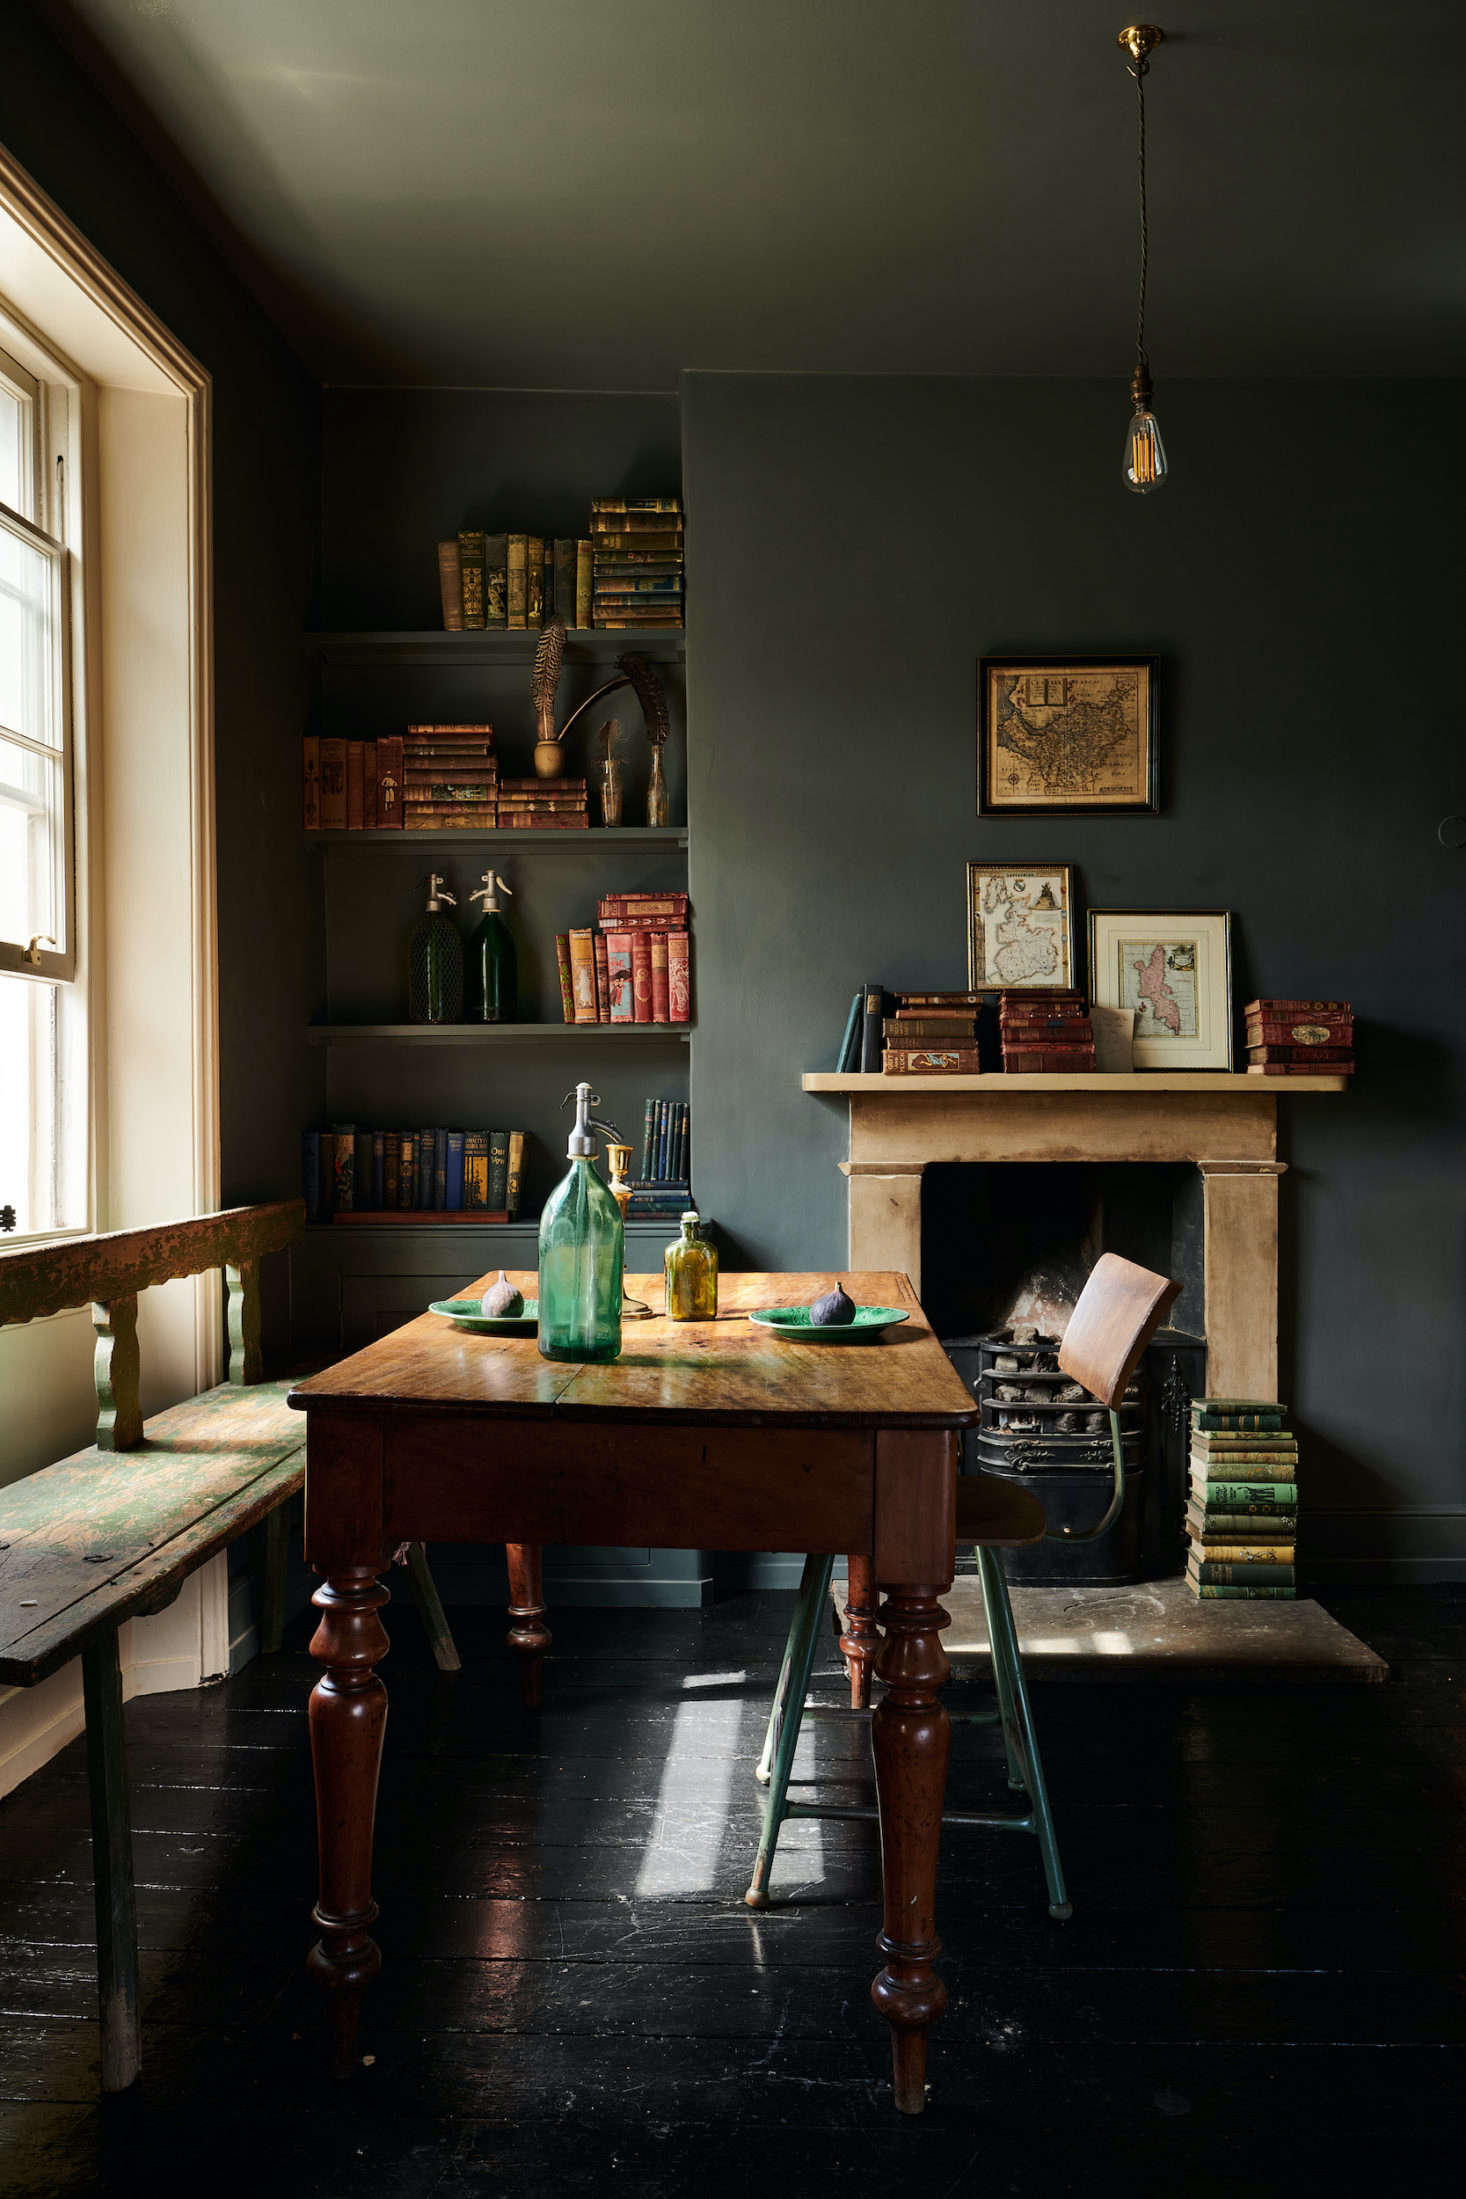 The breakfast nook of this deVOL kitchen in London feels rich with history thanks to an antique table and bench. See more of this artfully moody space in Kitchen of the Week: A London Kitchen Inspired by Traditional Haberdashery Stores. Photograph courtesy of deVOL.